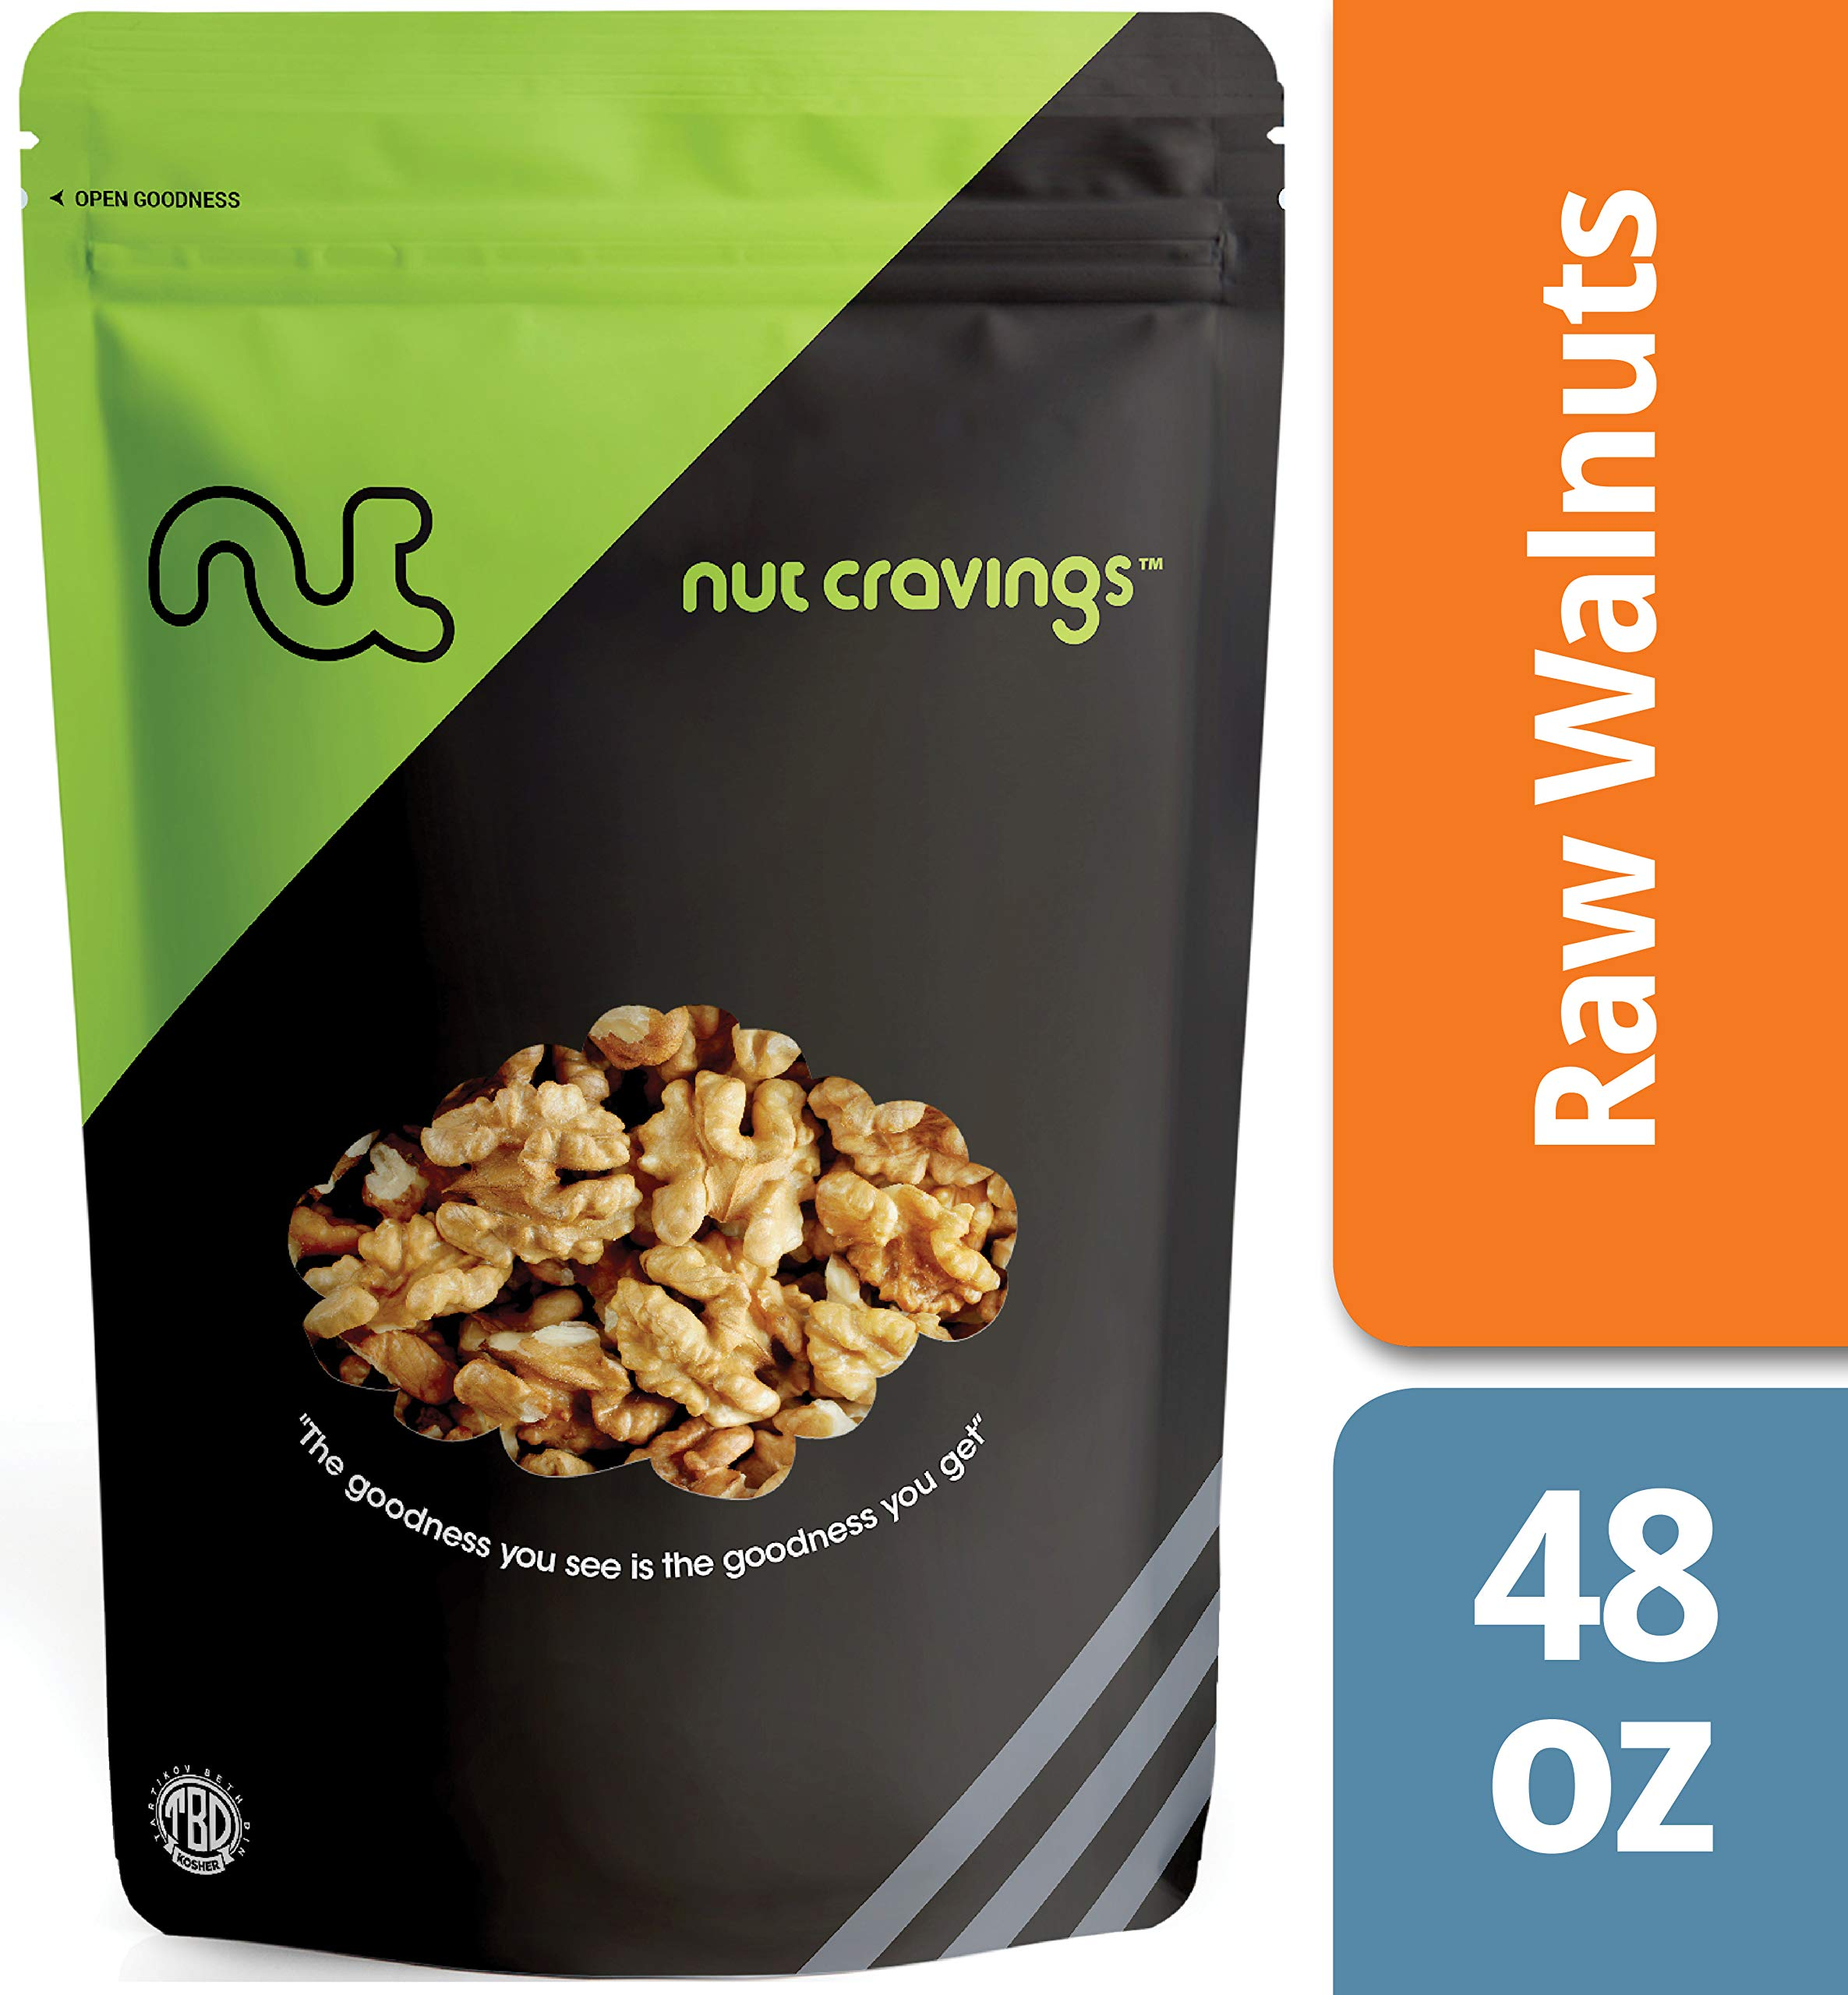 Nut Cravings California Raw Walnuts (3 Pounds) - 100% All Natural Shelled Halves and Pieces - 48 Ounce